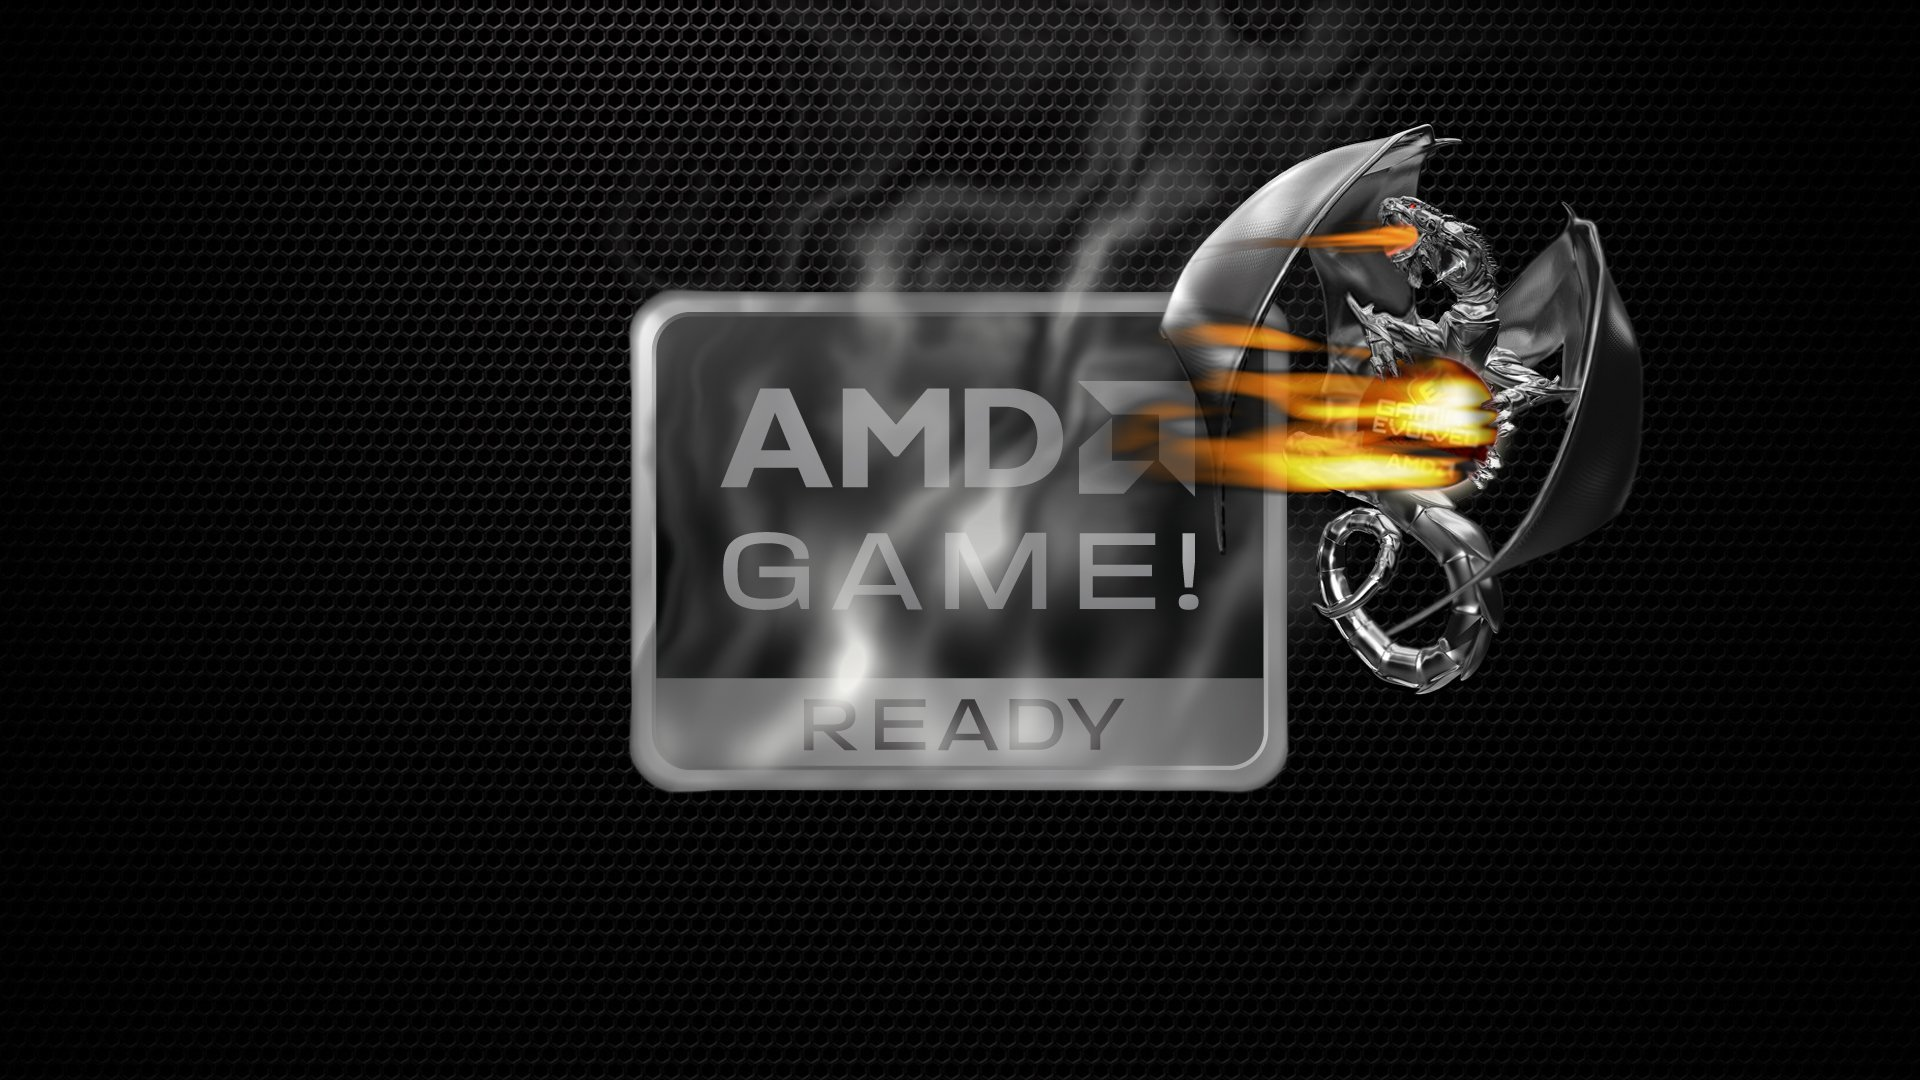 high resolution amd full hd 1080p wallpaper id:383466 for desktop